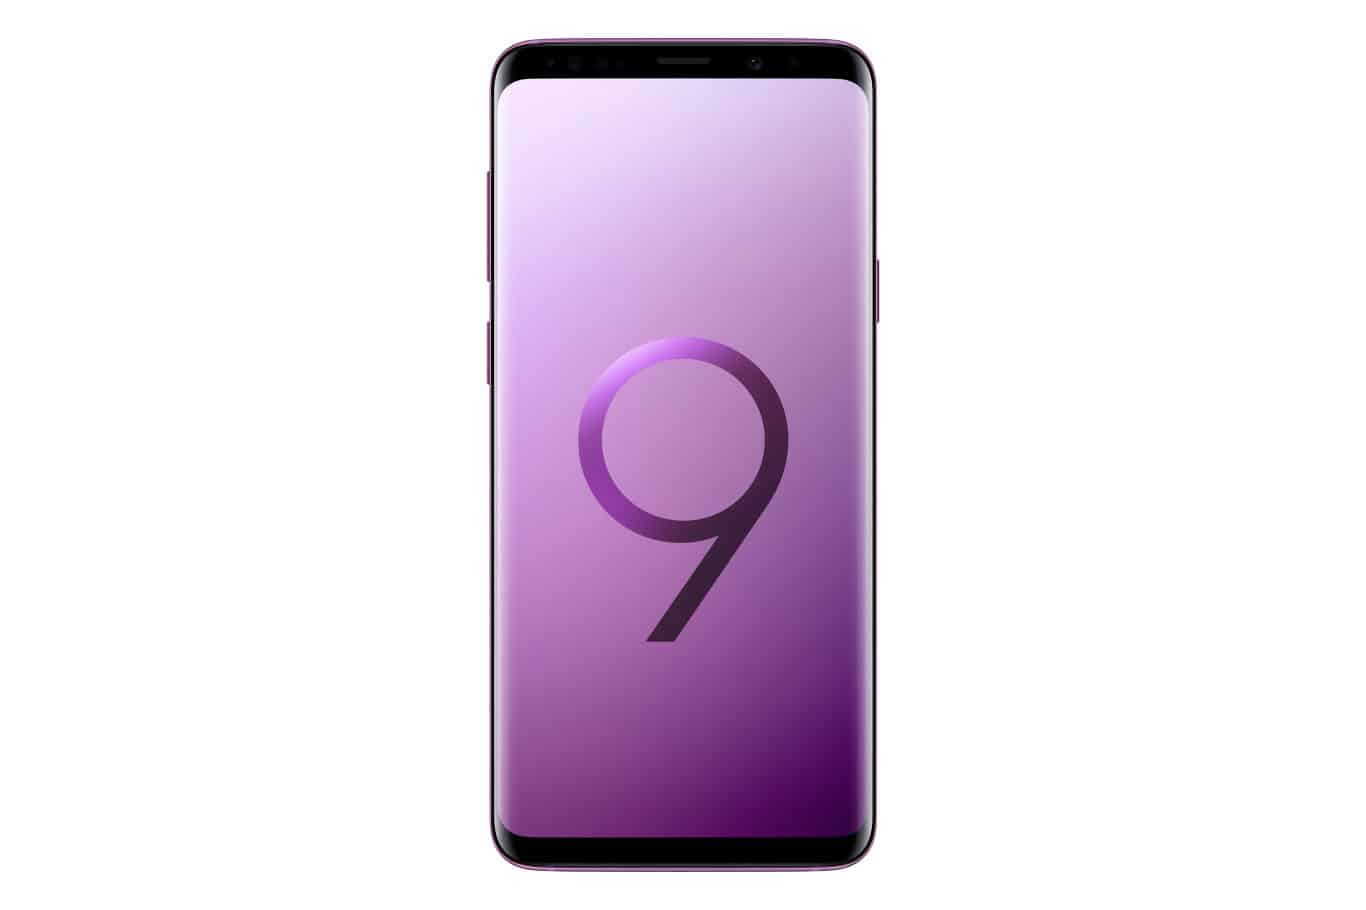 specs samsung galaxy s9 plus mwc 2018 android news. Black Bedroom Furniture Sets. Home Design Ideas